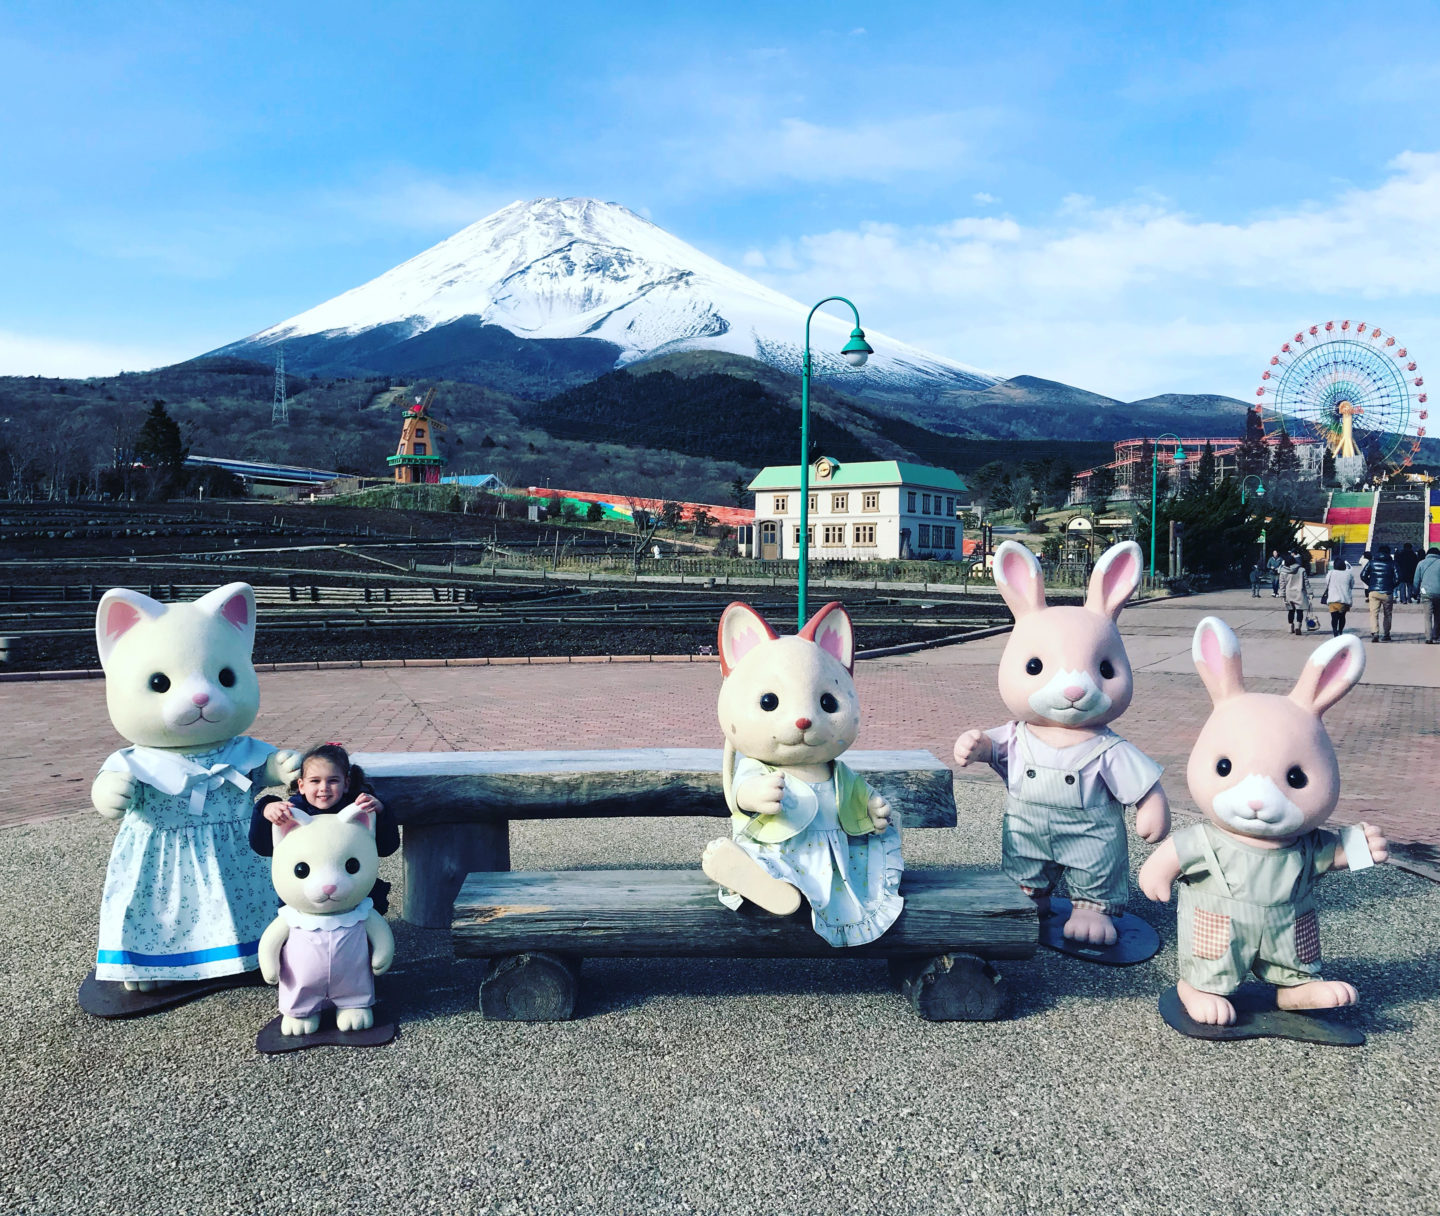 Day Trip Sylvanian Families Best Fuji View And Biggest Bouncy Mount Shizuoka Tourist Pass Mini 3 Days My Kids Love The Rides So It Was Cheaper For Us To Do A One We Didnt Have Buy Separate Tickets Every Single Thing